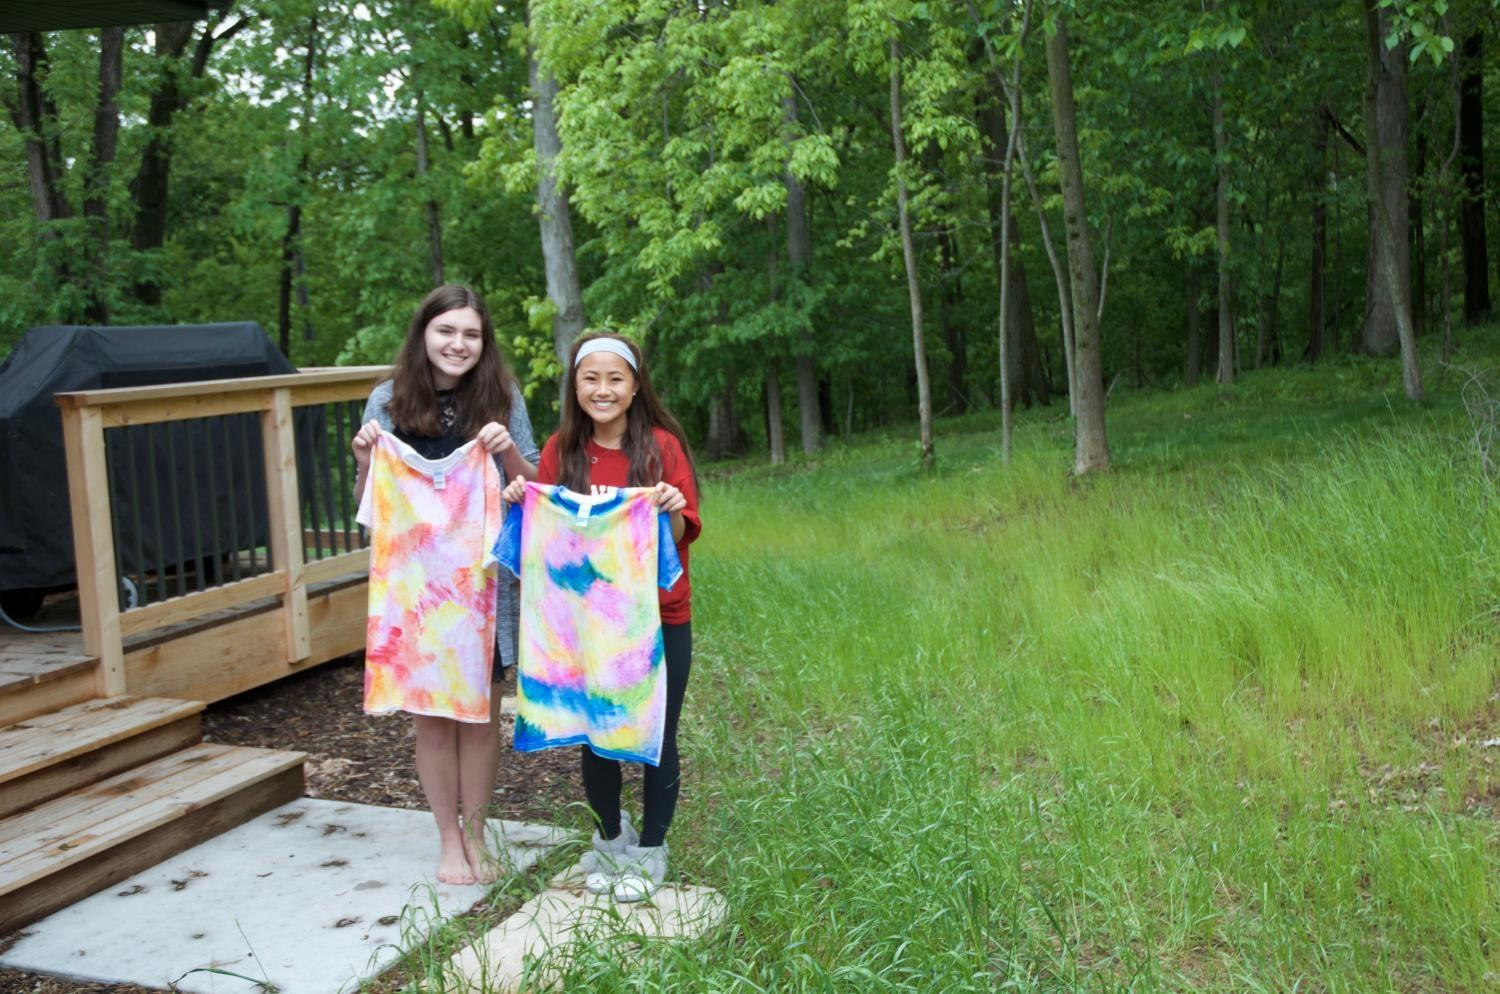 West side story staffers show off their tie-dye shirts.